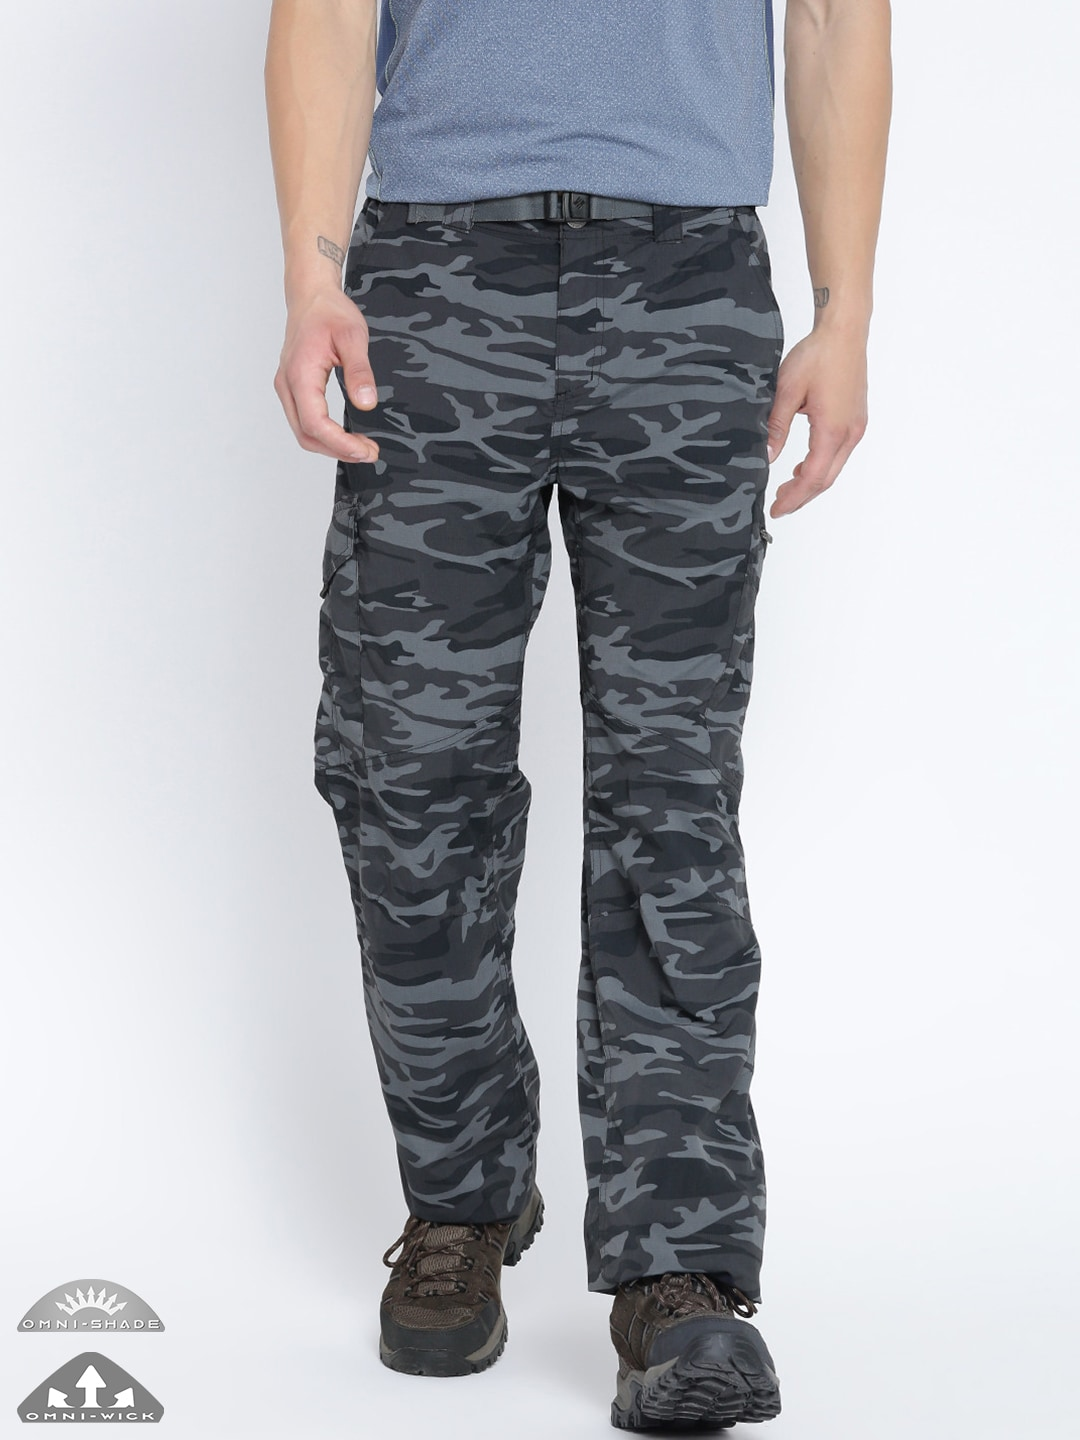 Cargos Trousers in Buy Trousers Cargos Columbia India Columbia online ED2HWY9I